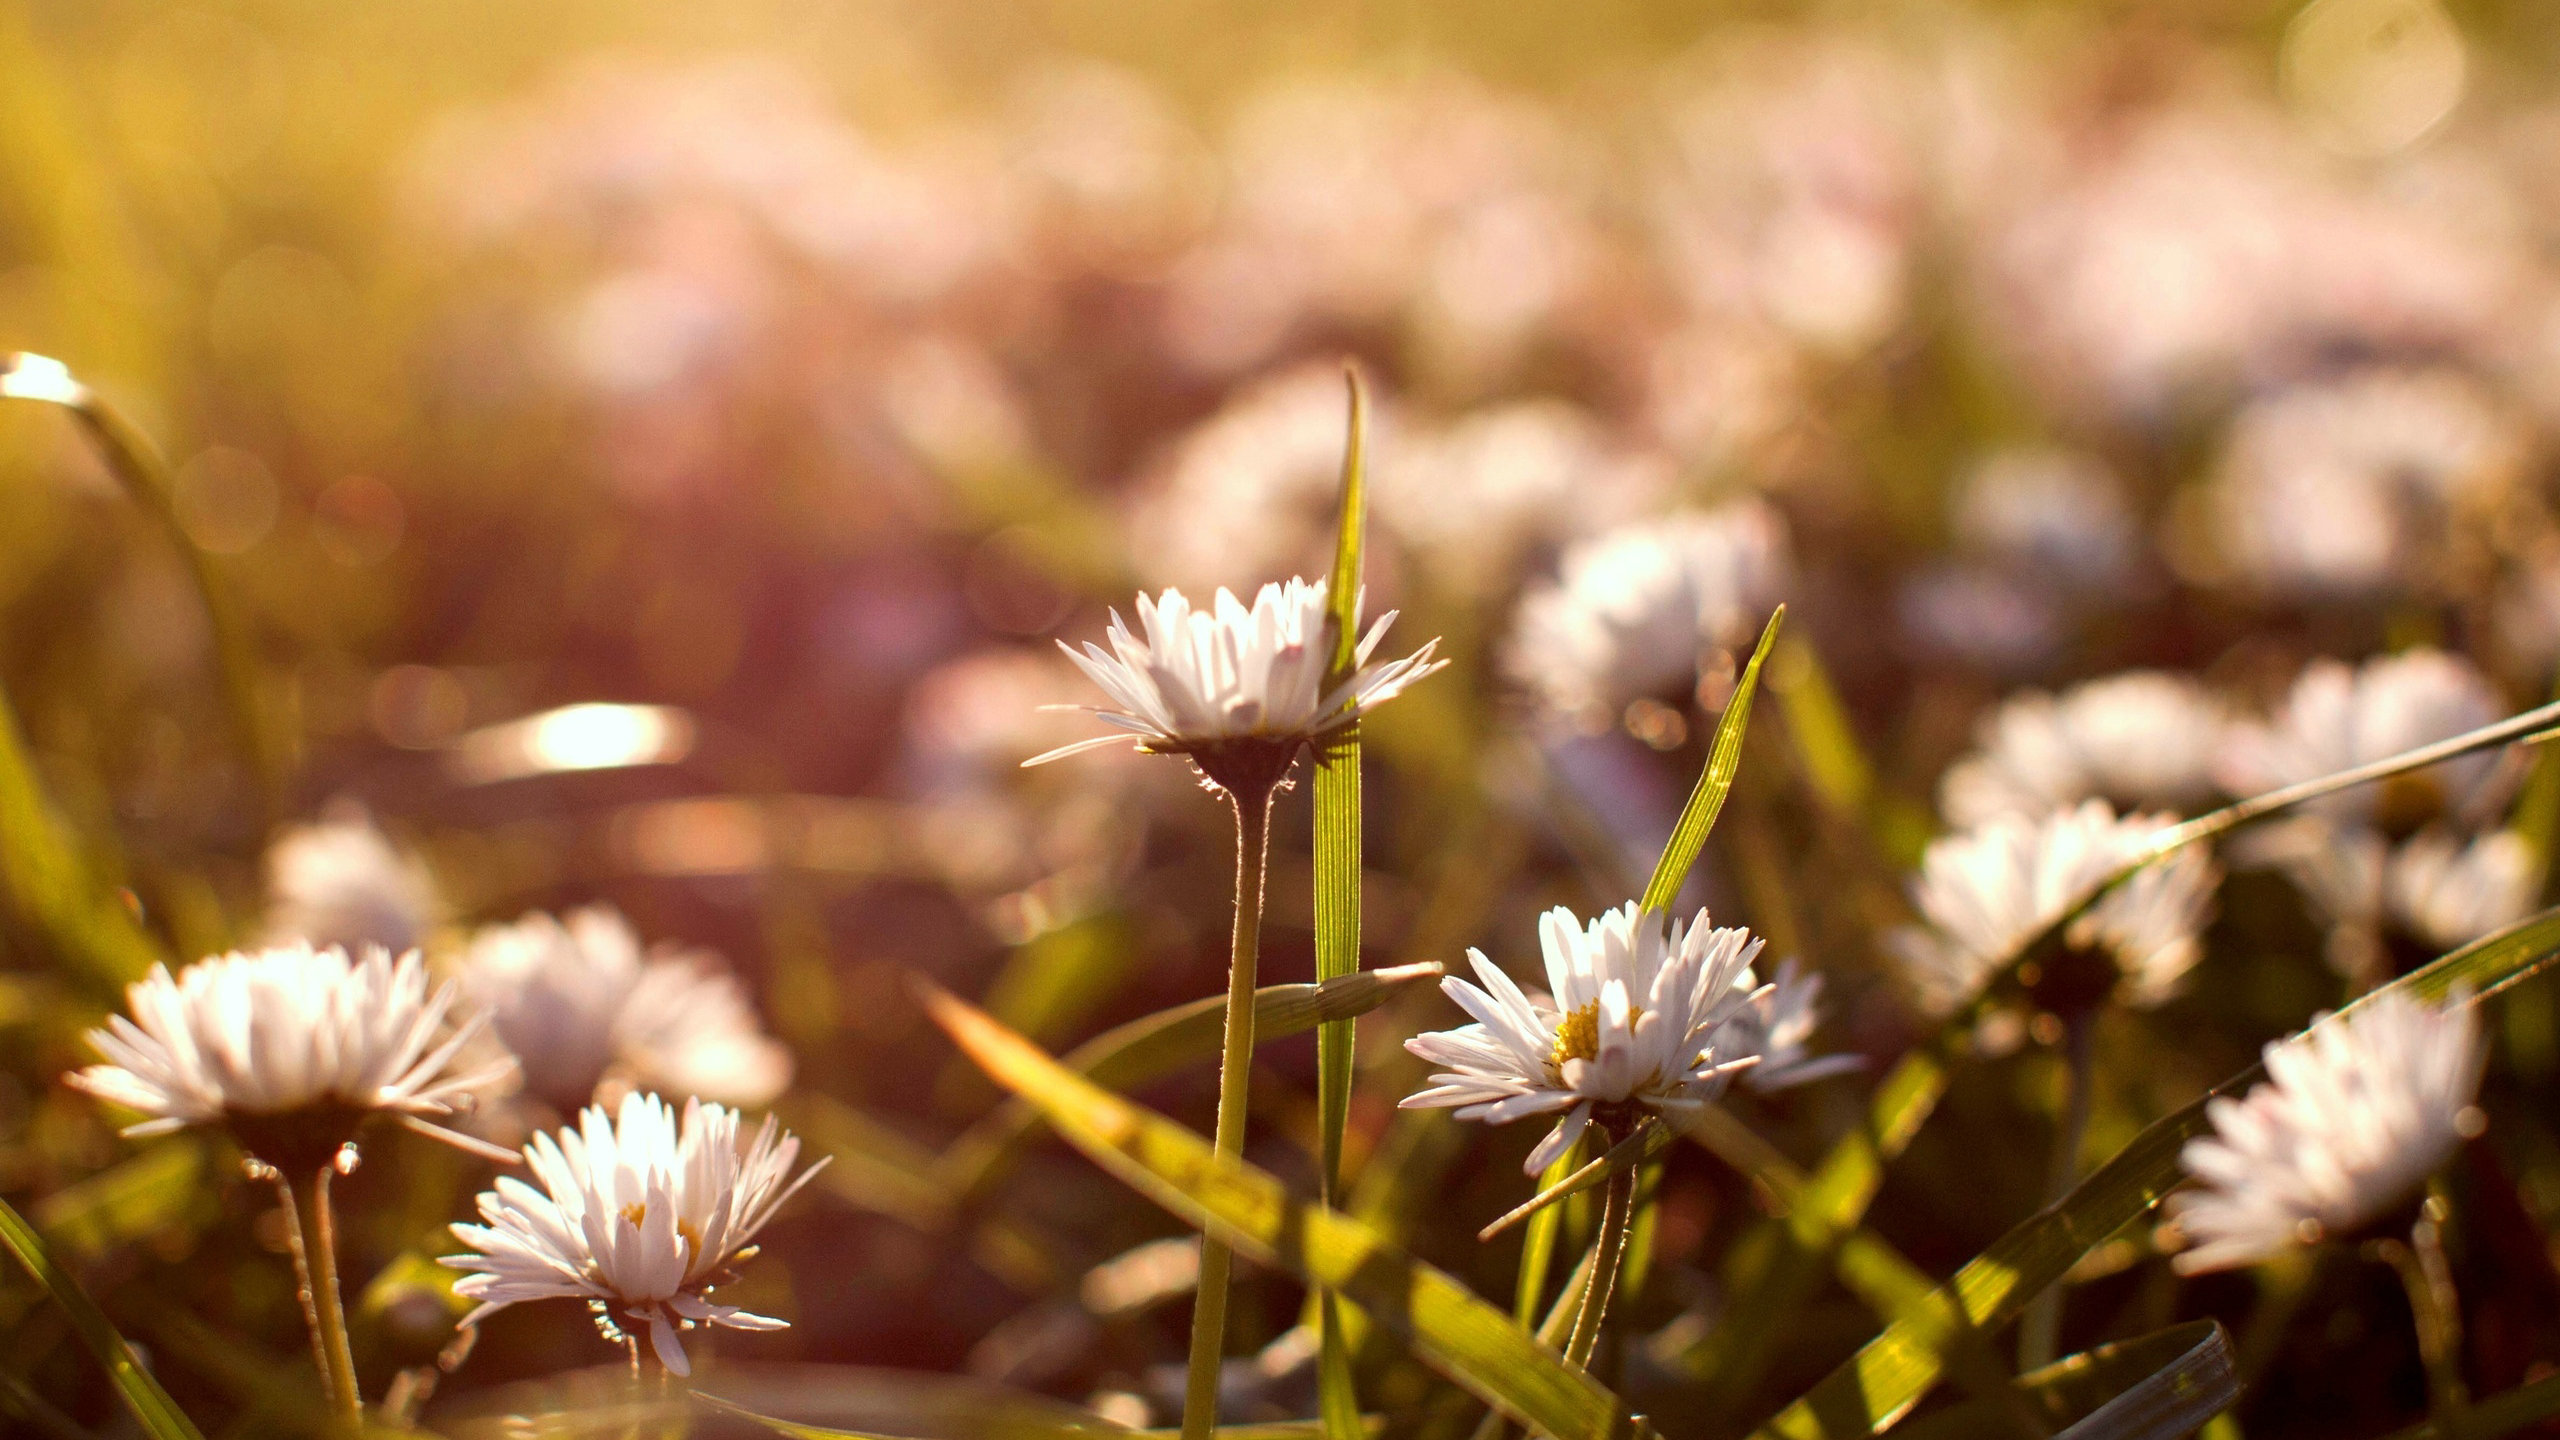 Amazing Daisy Bokeh Wallpaper